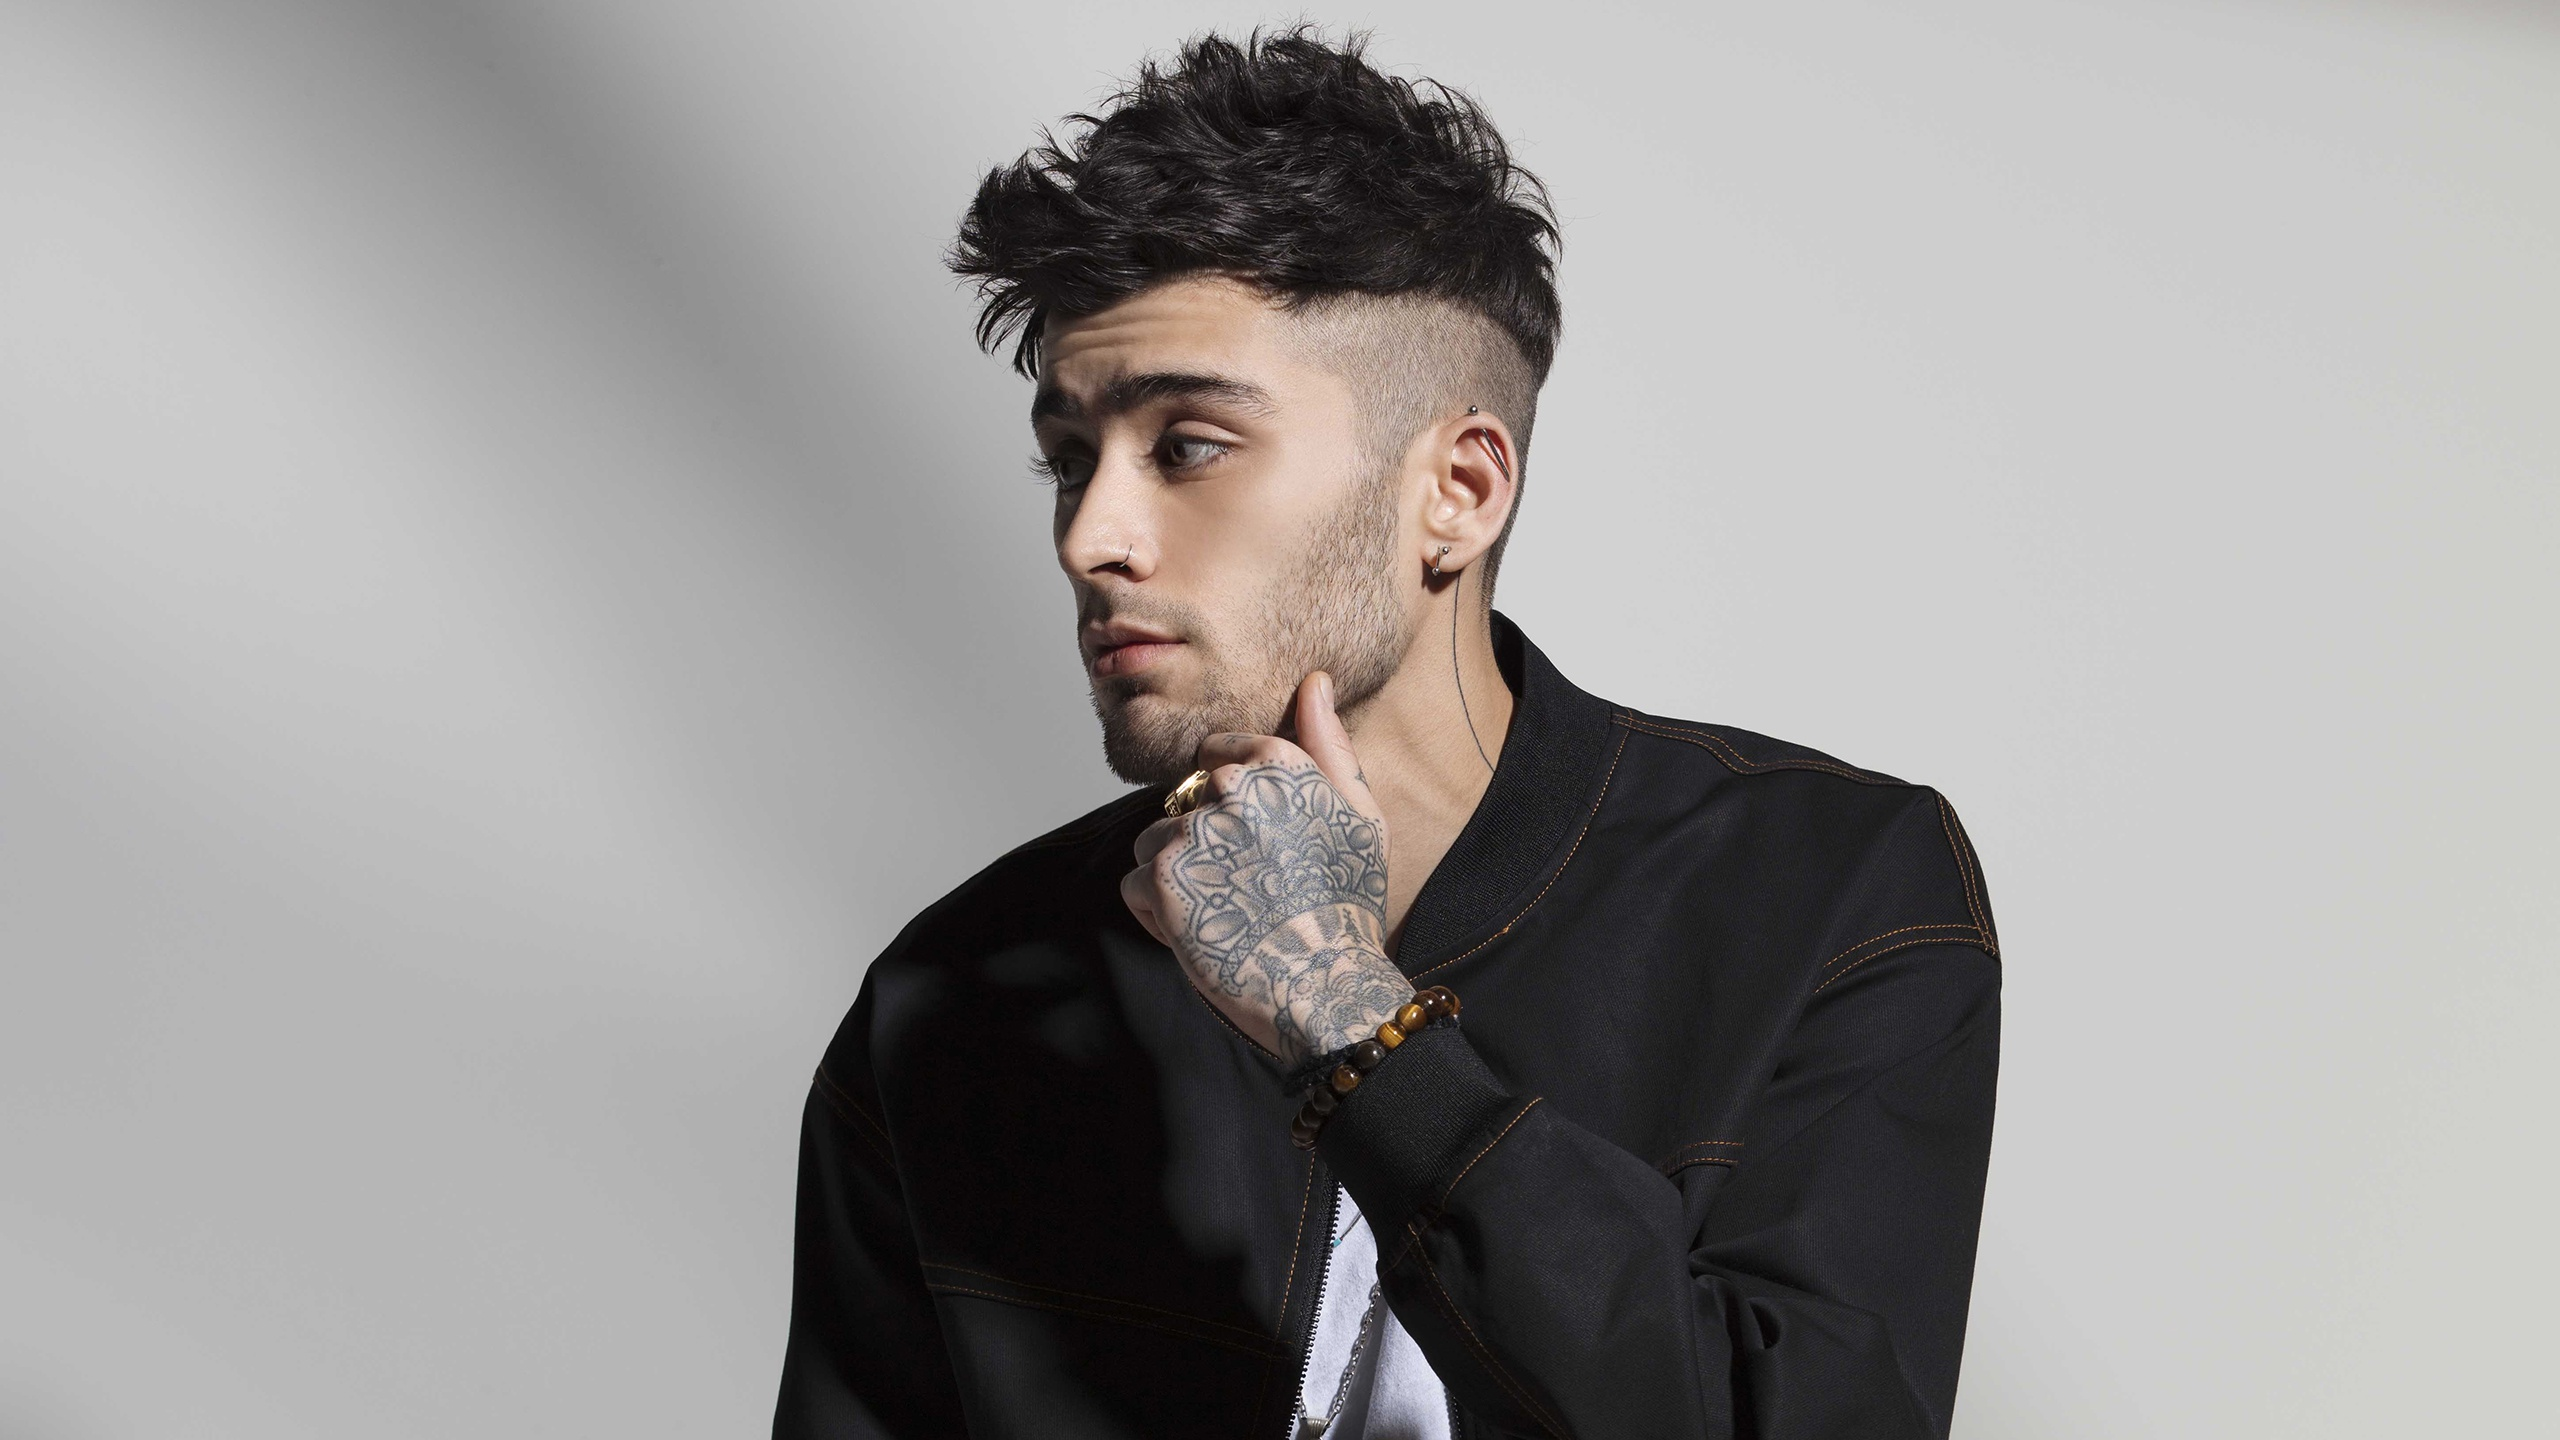 Zayn malik hd wallpaper background image 2560x1440 id1000304 wallpaper abyss